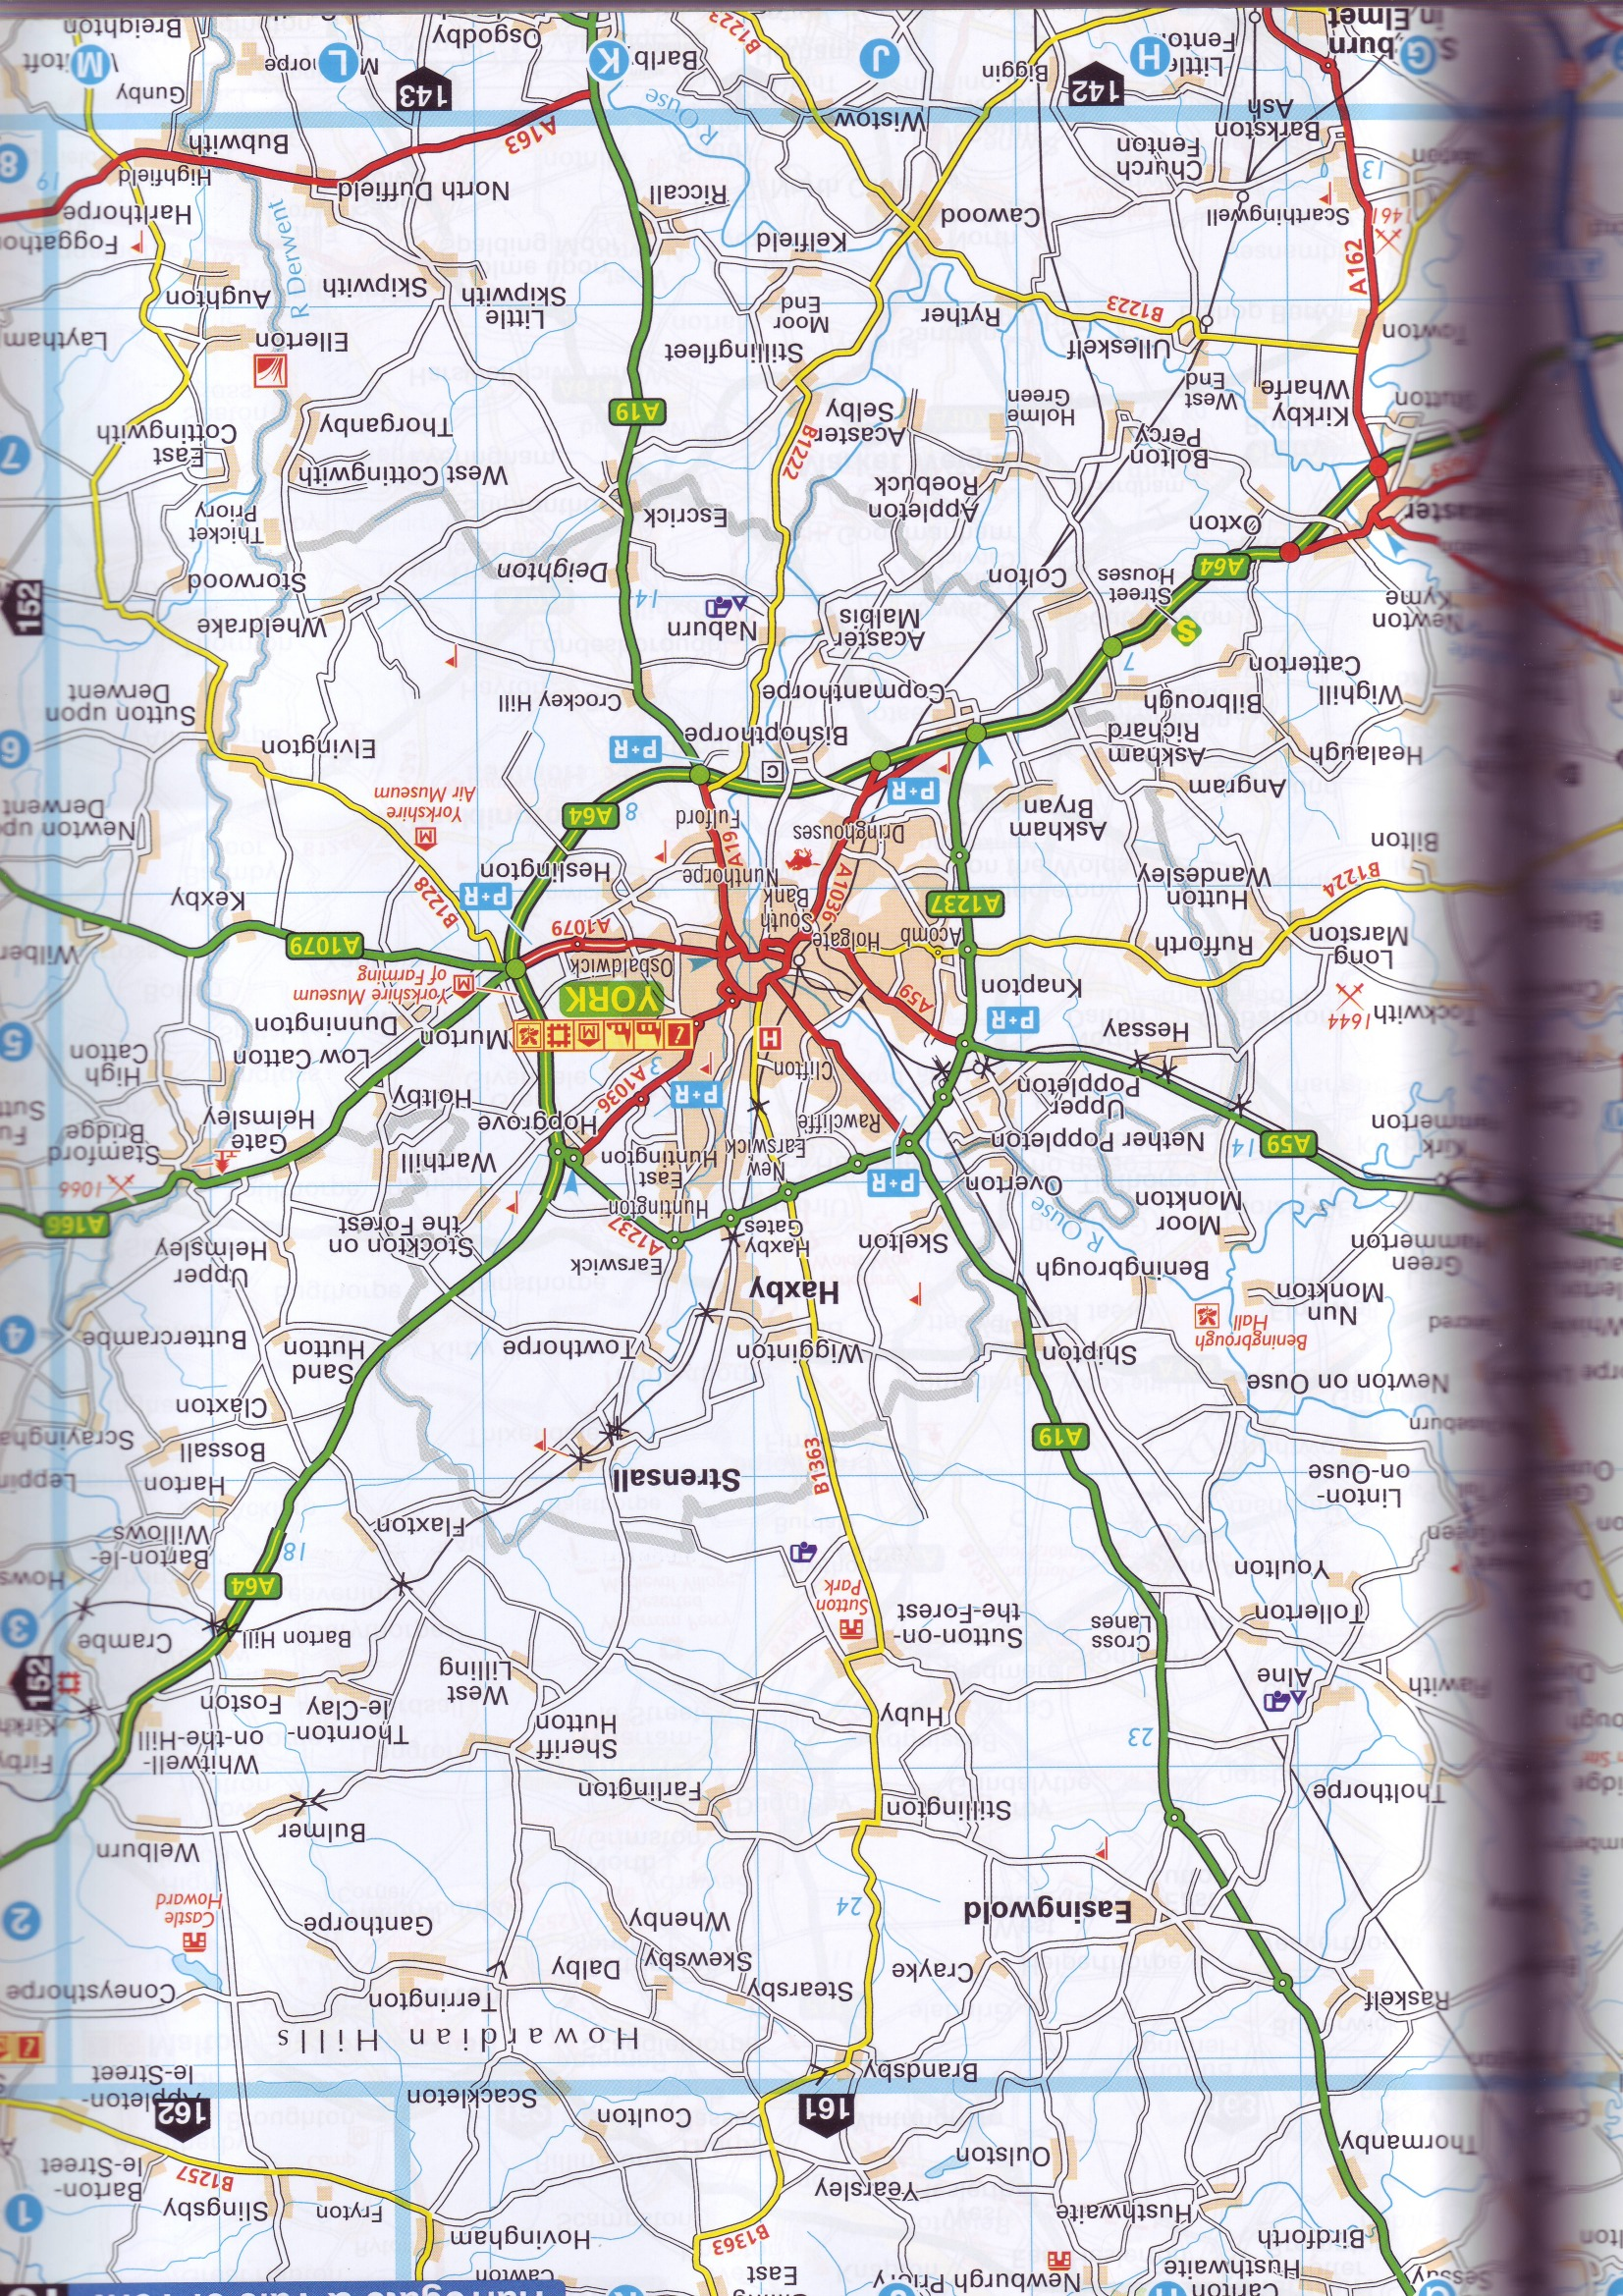 Road Atlases Great Britain - Buy online on viamichelin route planner, microsoft route planner, nike route planner,